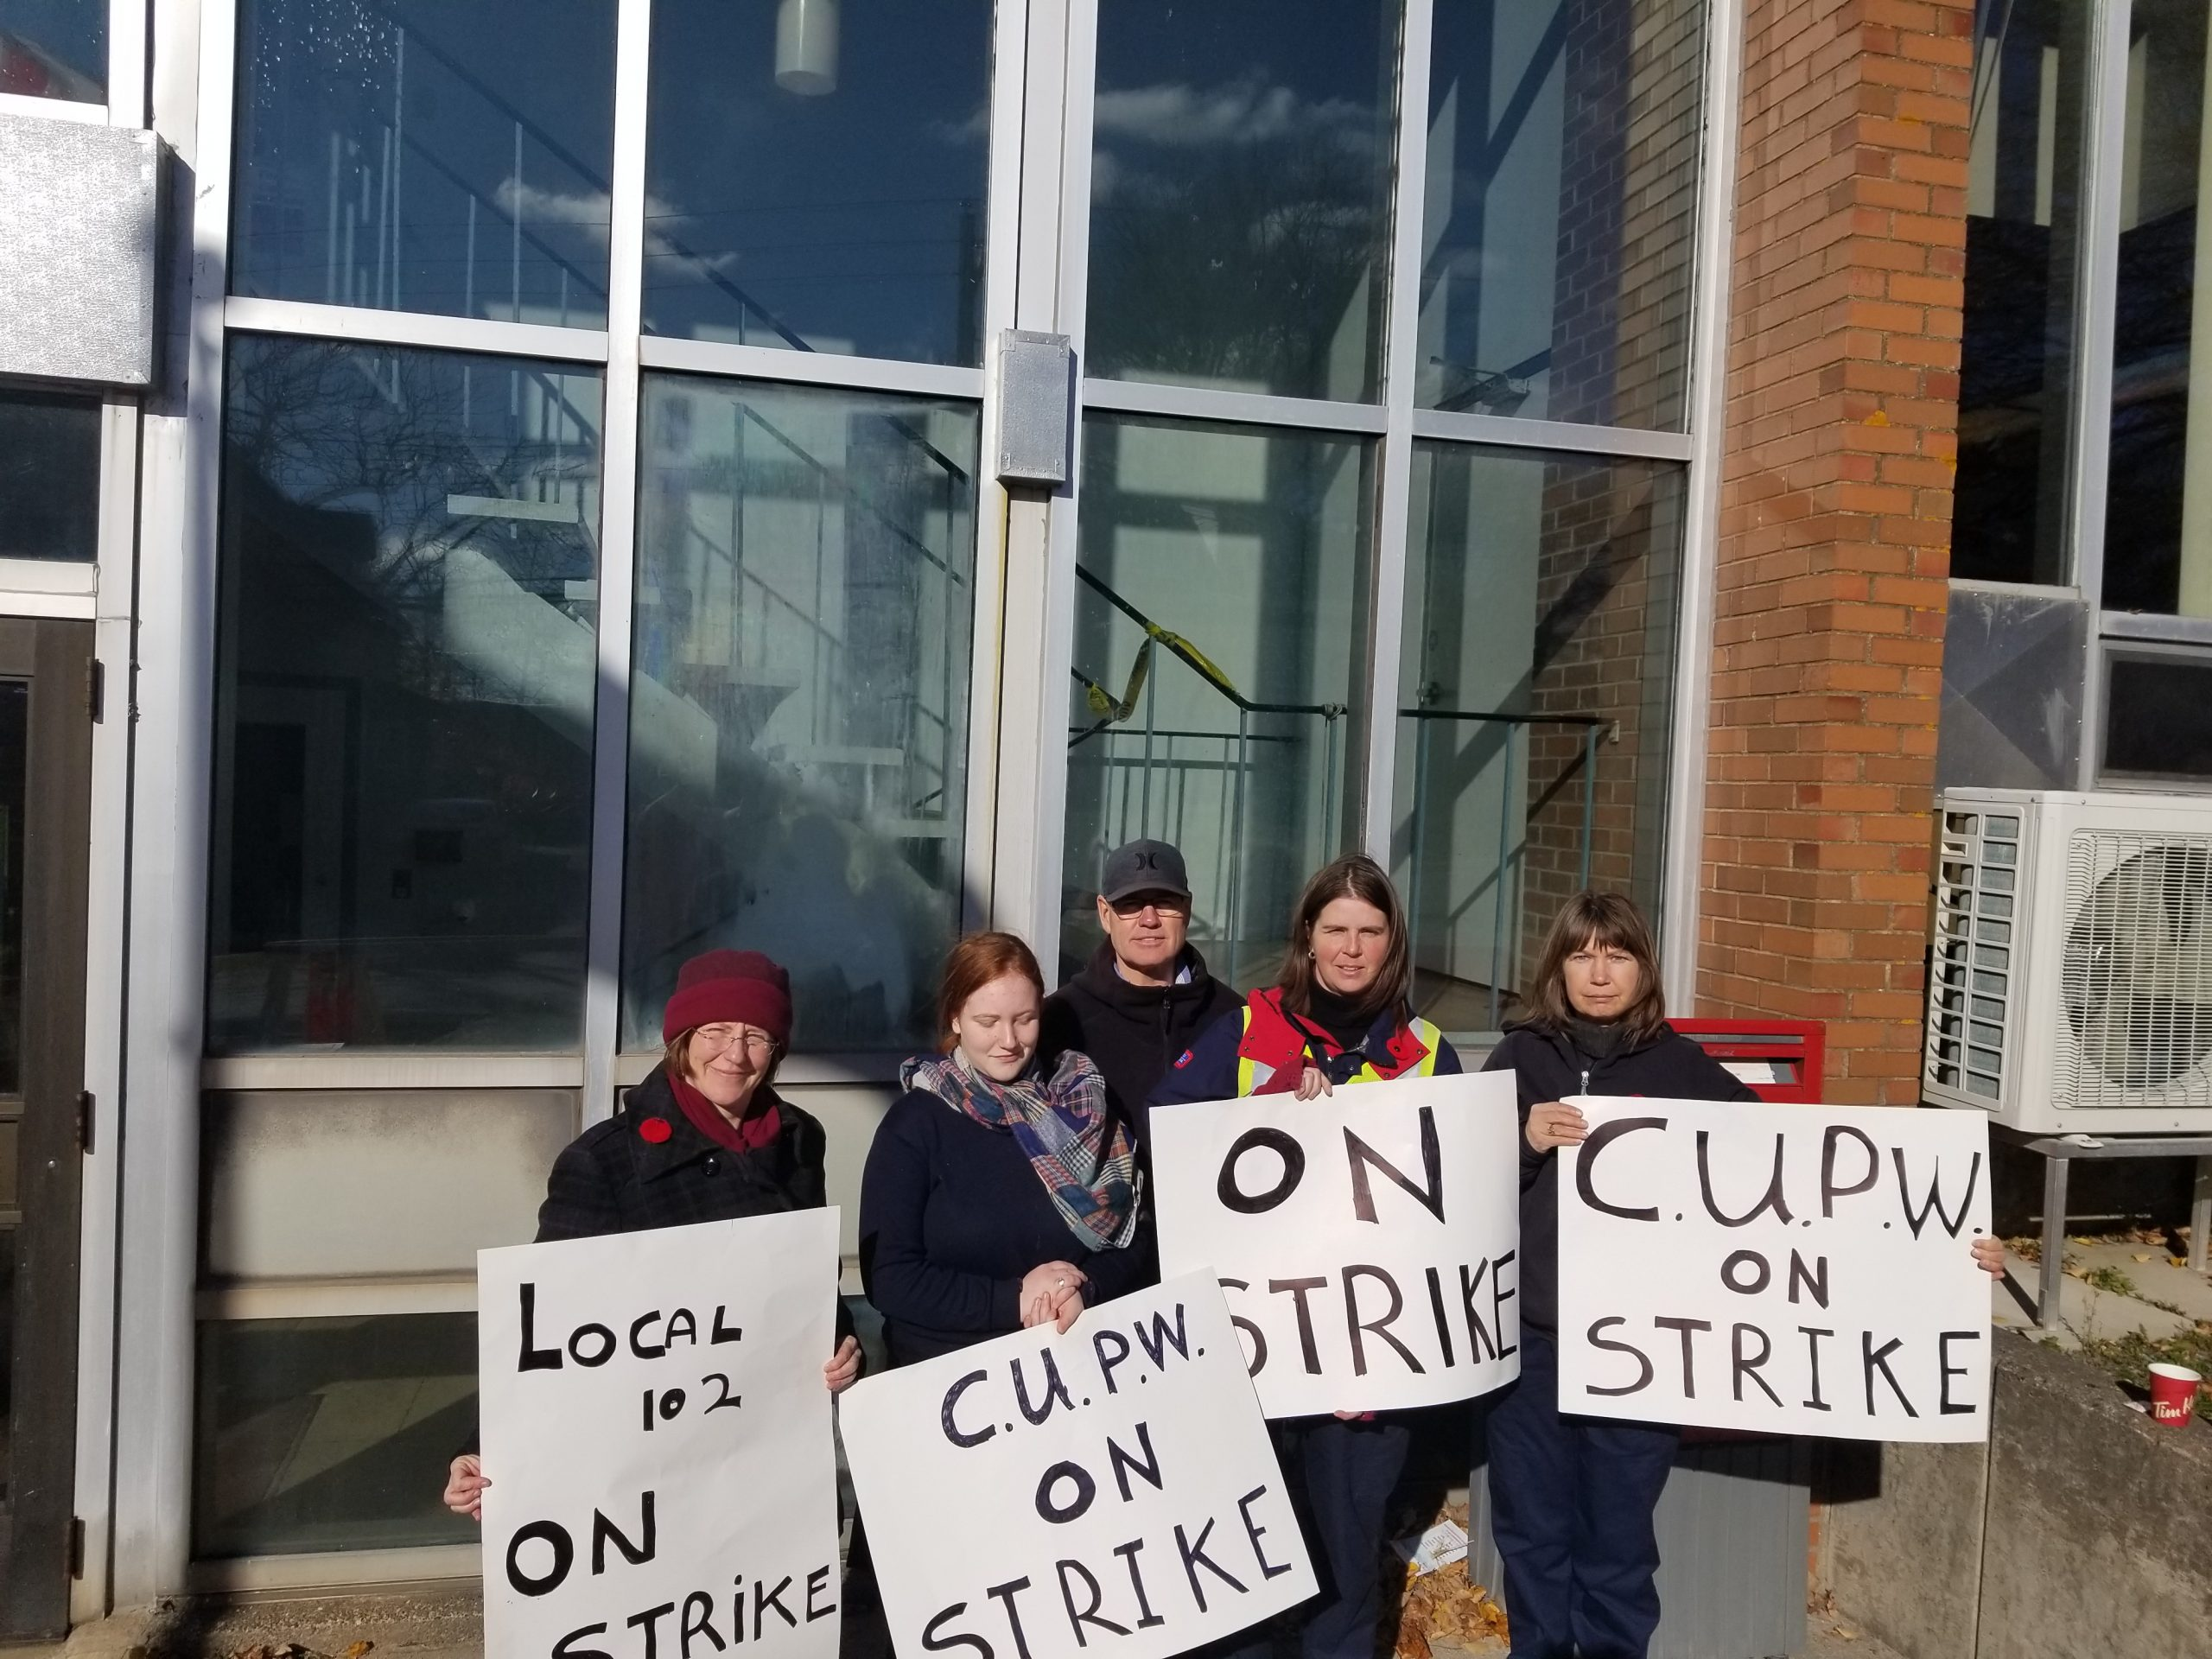 Local CUP-W rep says many issues remain following back-to-work legislation